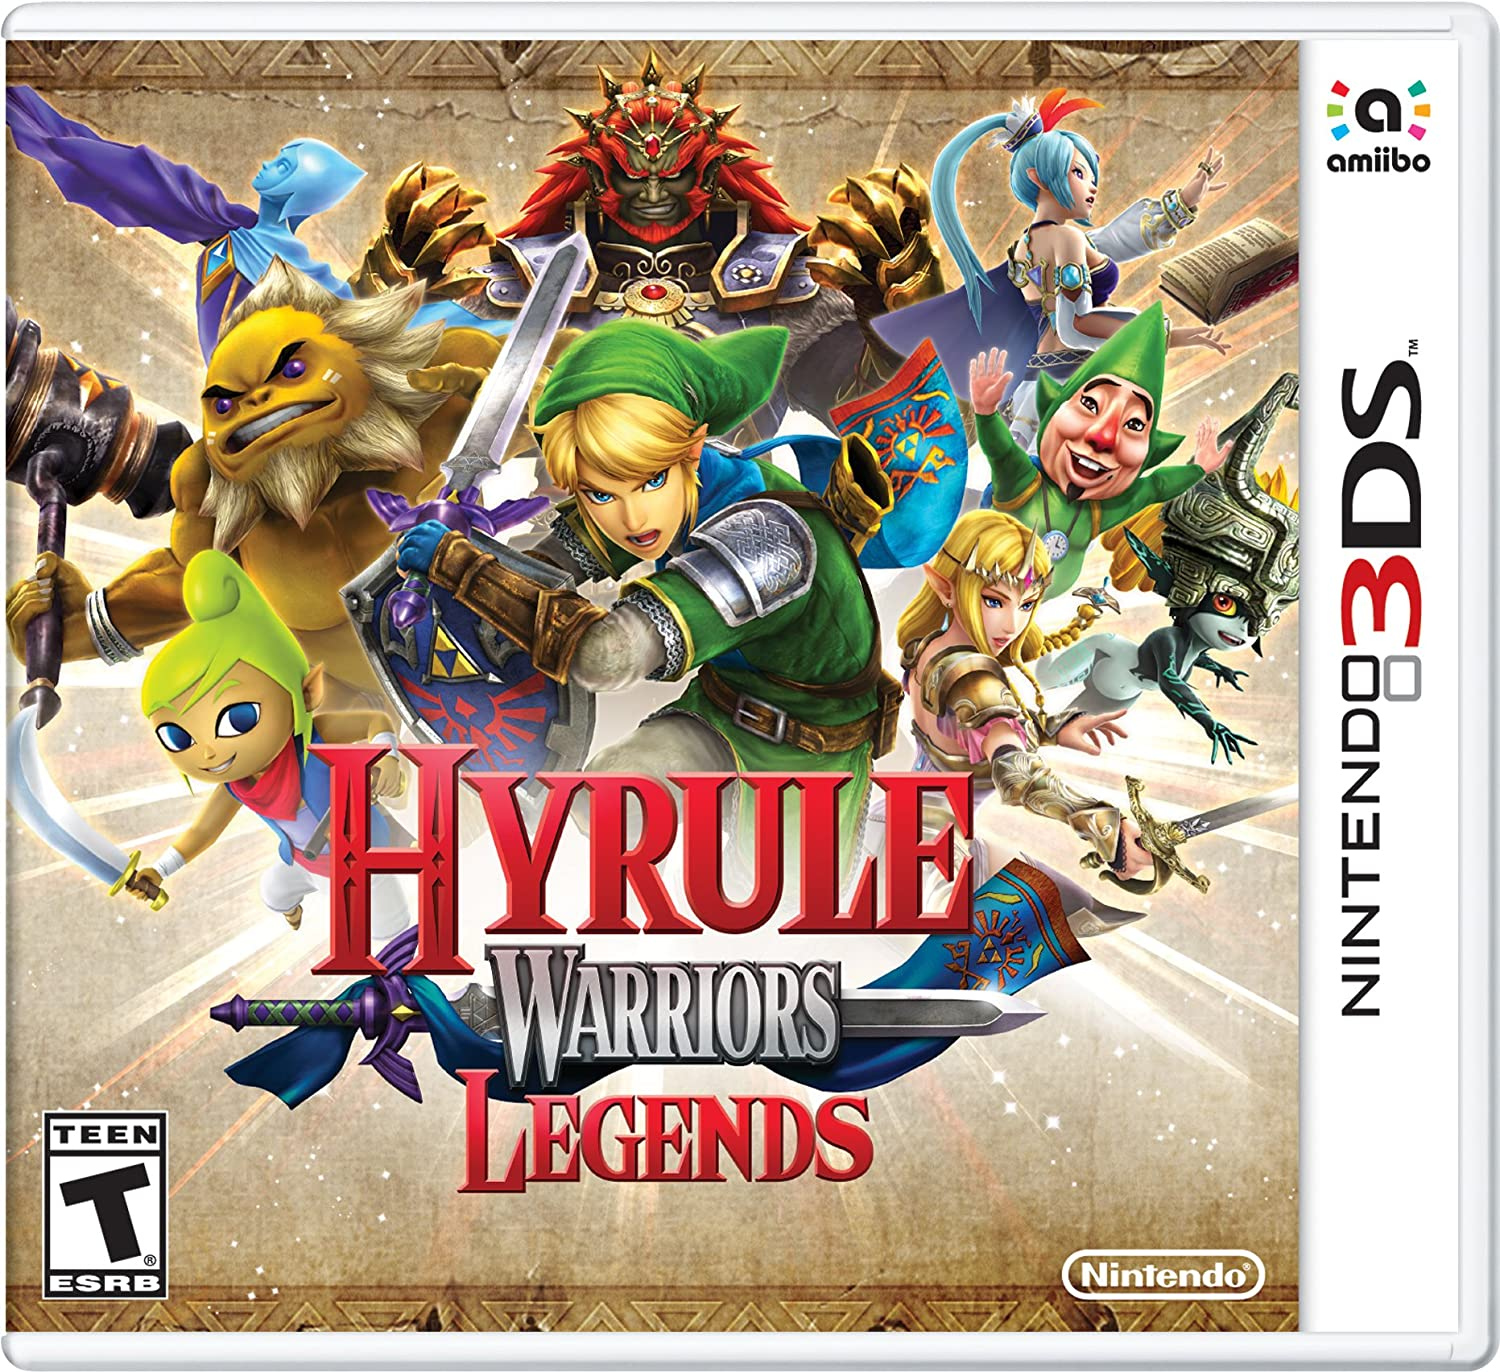 Hyrule Warriors: Legends - 3DS (Digital Code)